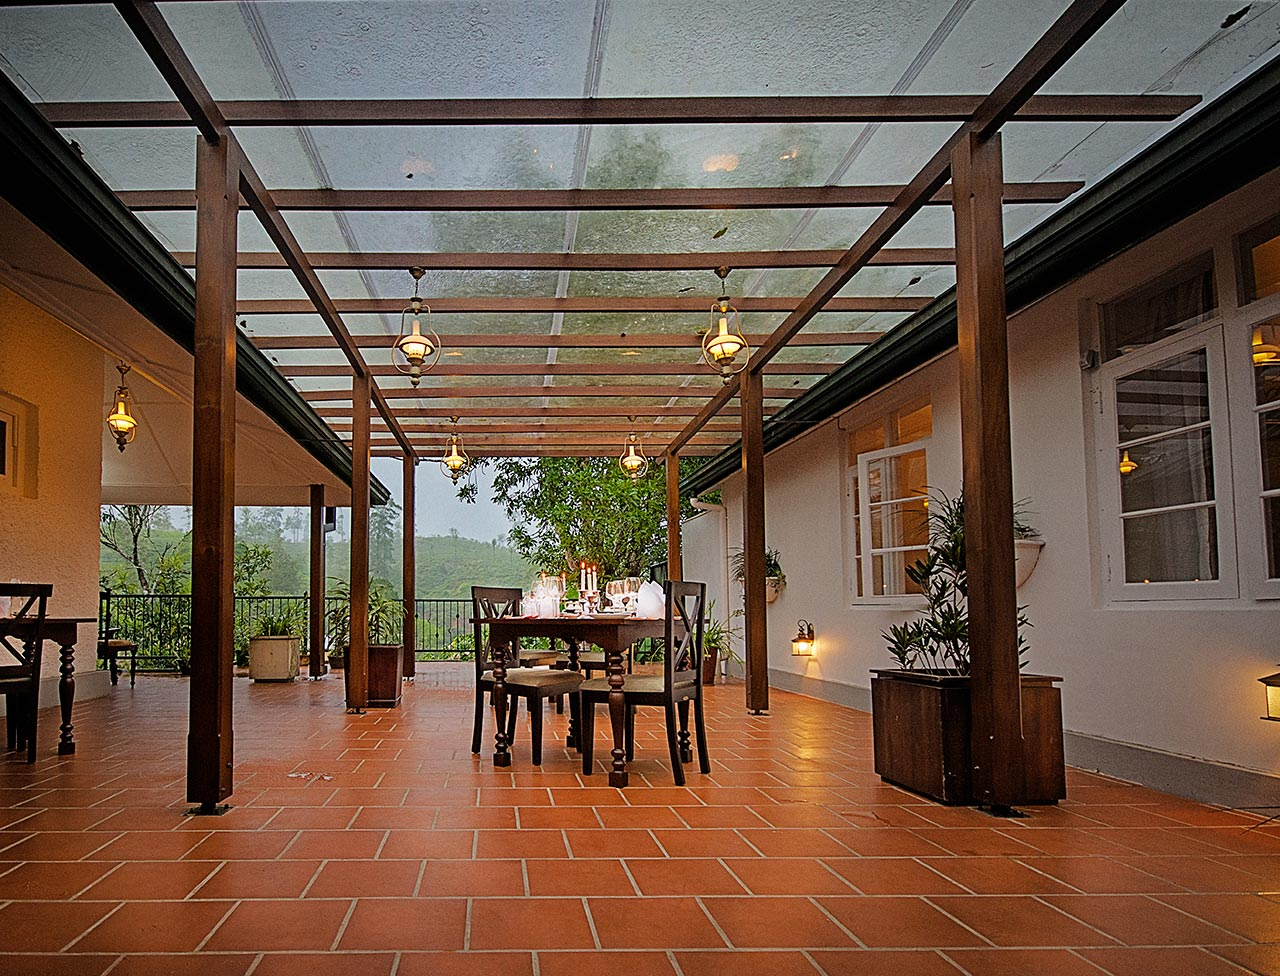 Indoor dining area with translucent roofing